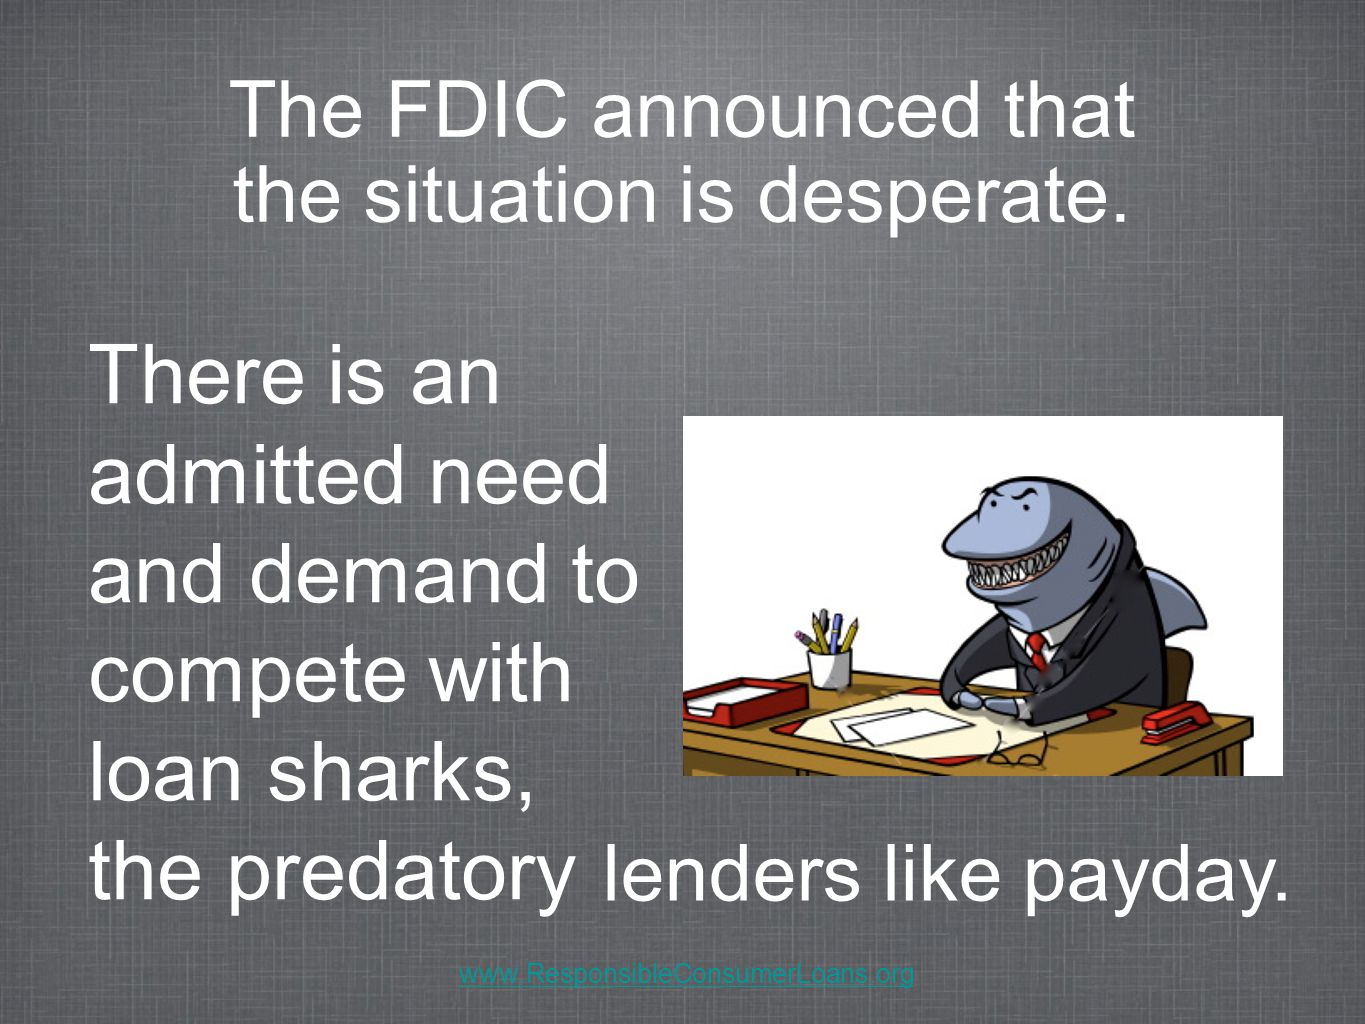 There is an admitted need and demand to compete with loan sharks, the predatory The FDIC announced that the situation is desperate.